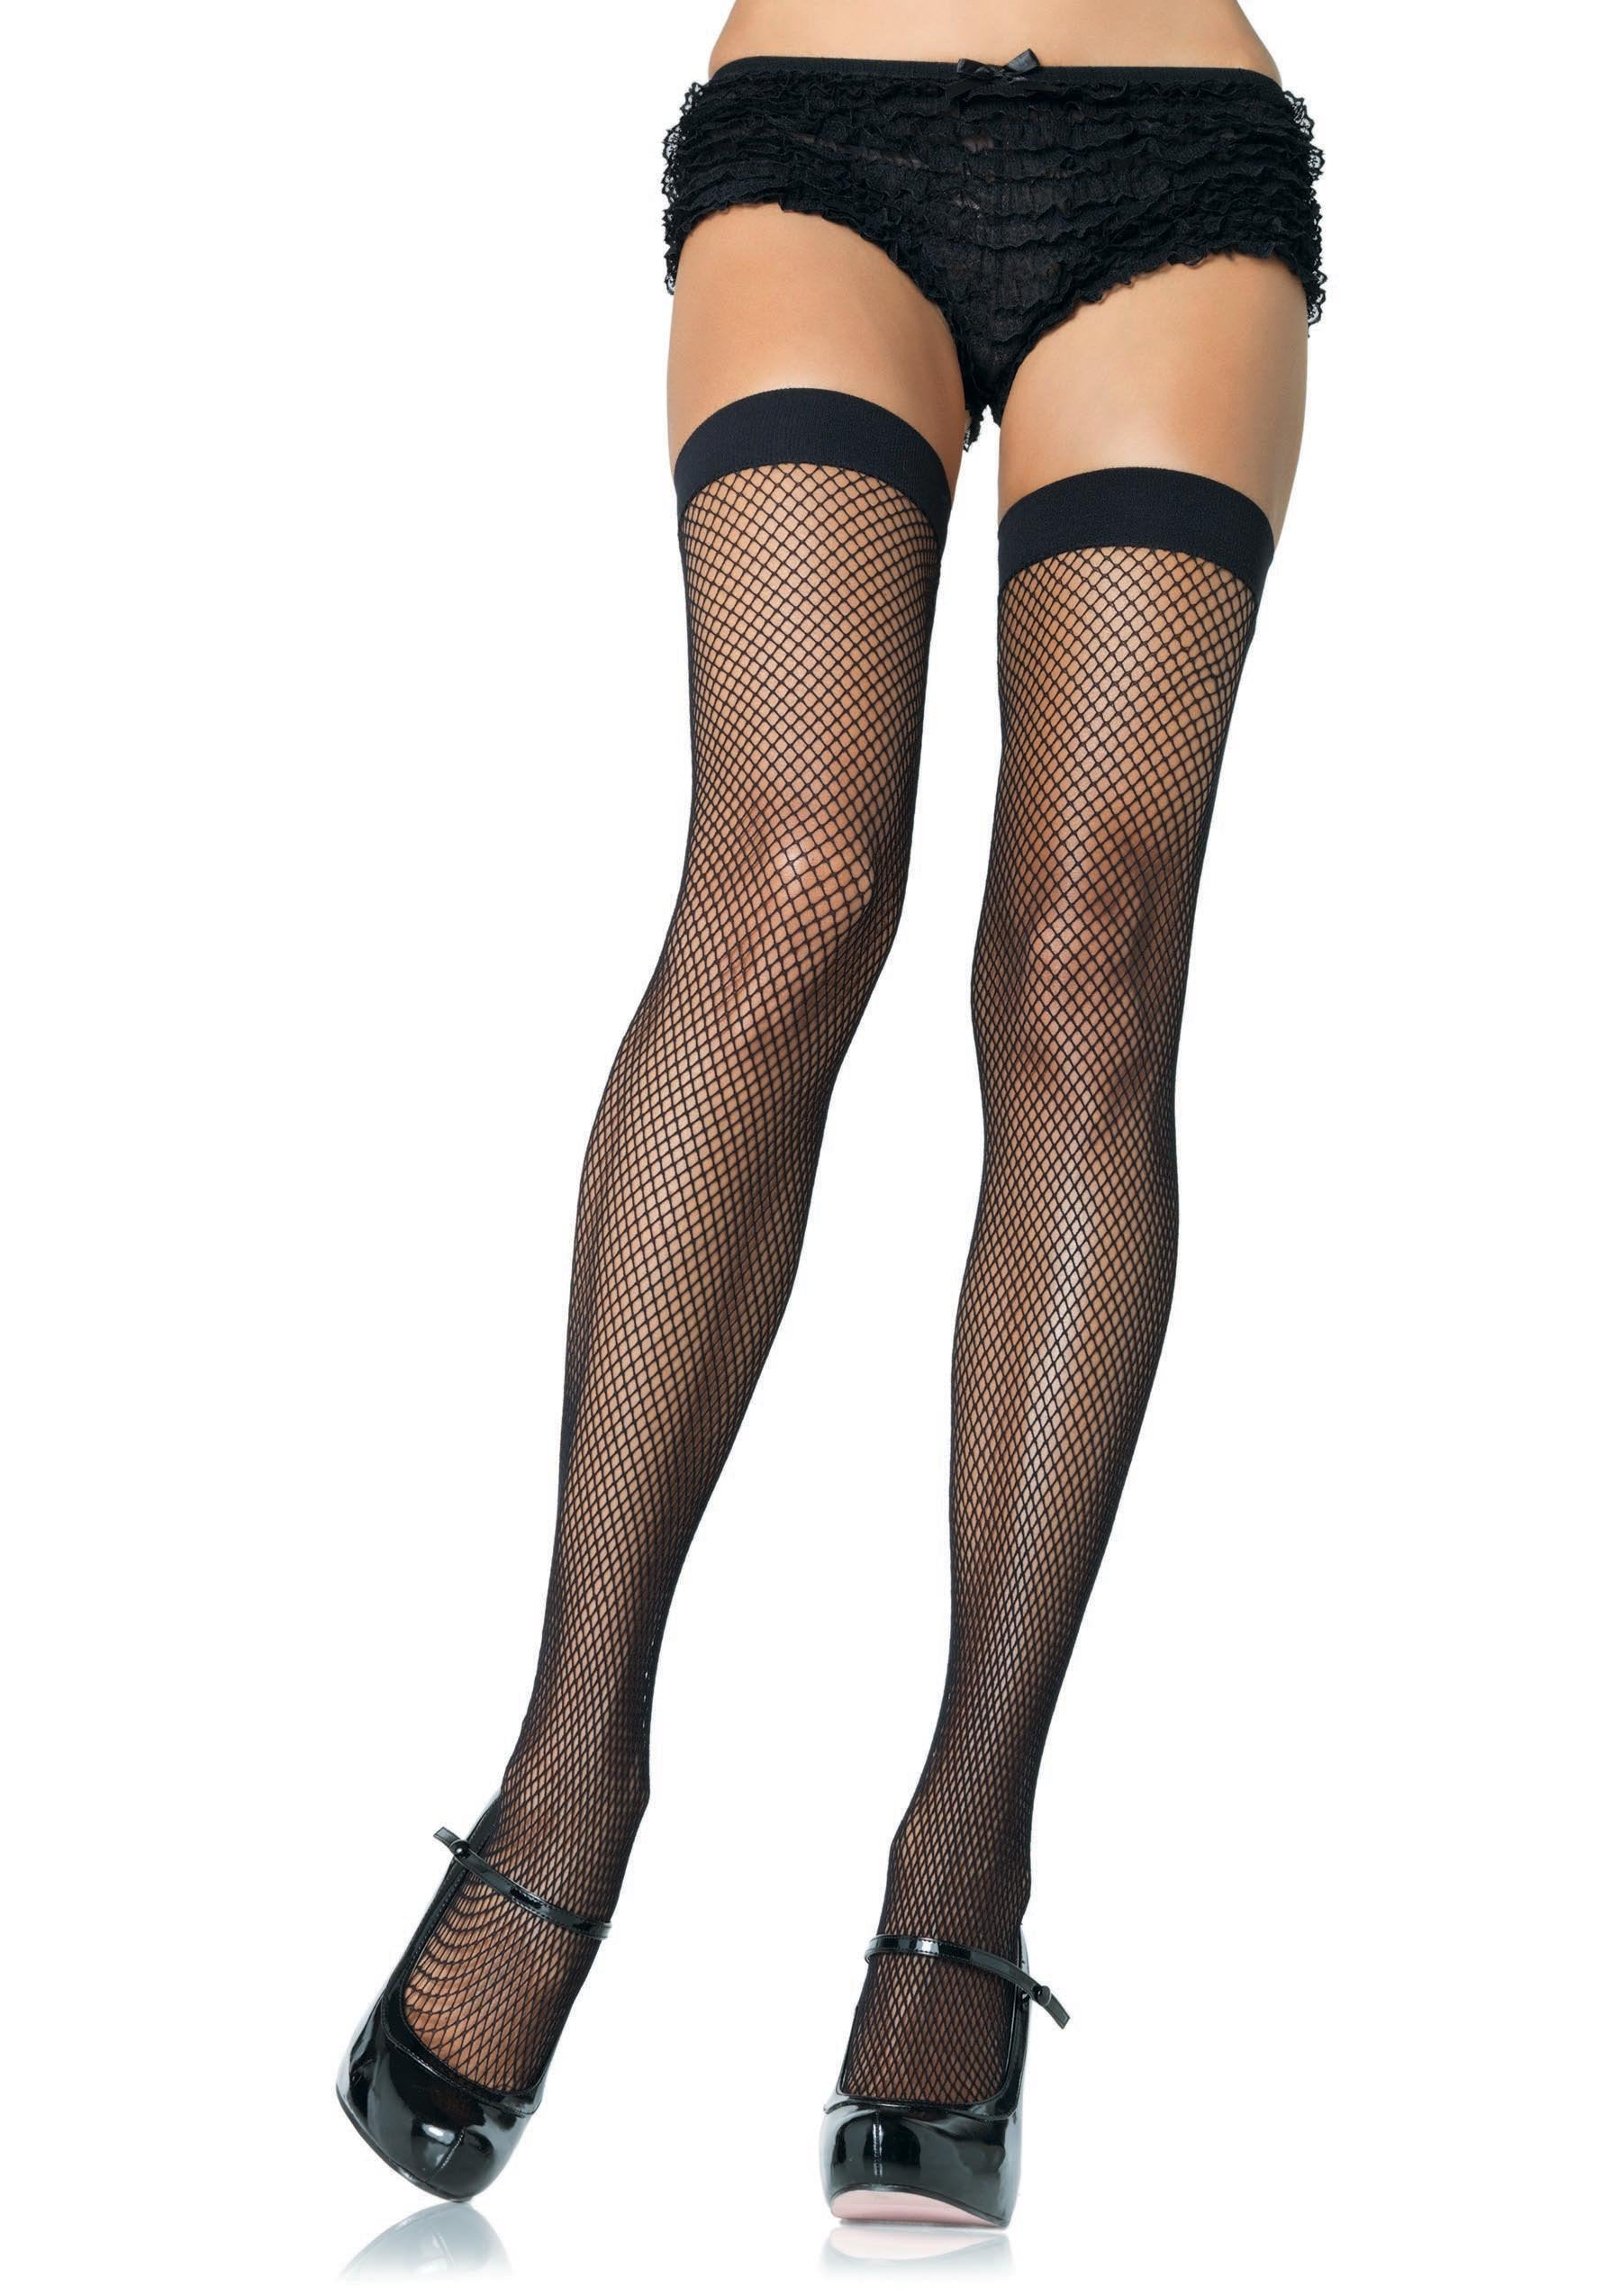 Leg Avenue Costume Accessories BLACK / O/S Nylon Fishnet Stockings